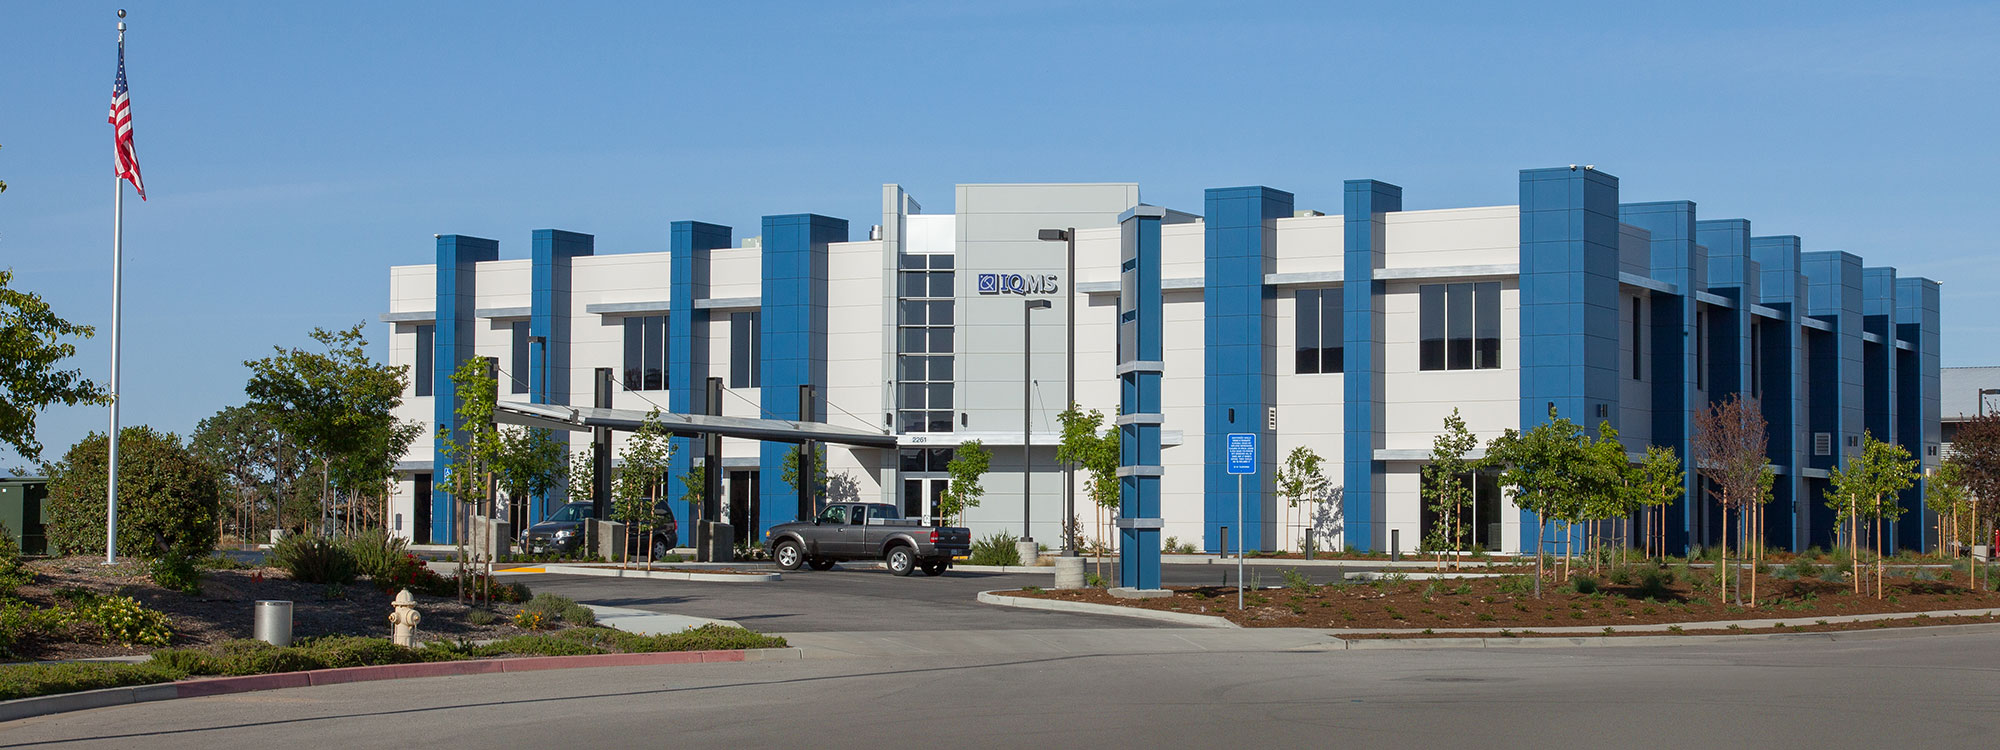 IQMS building contruction - Paso Robles, CA - JW Design & Construction